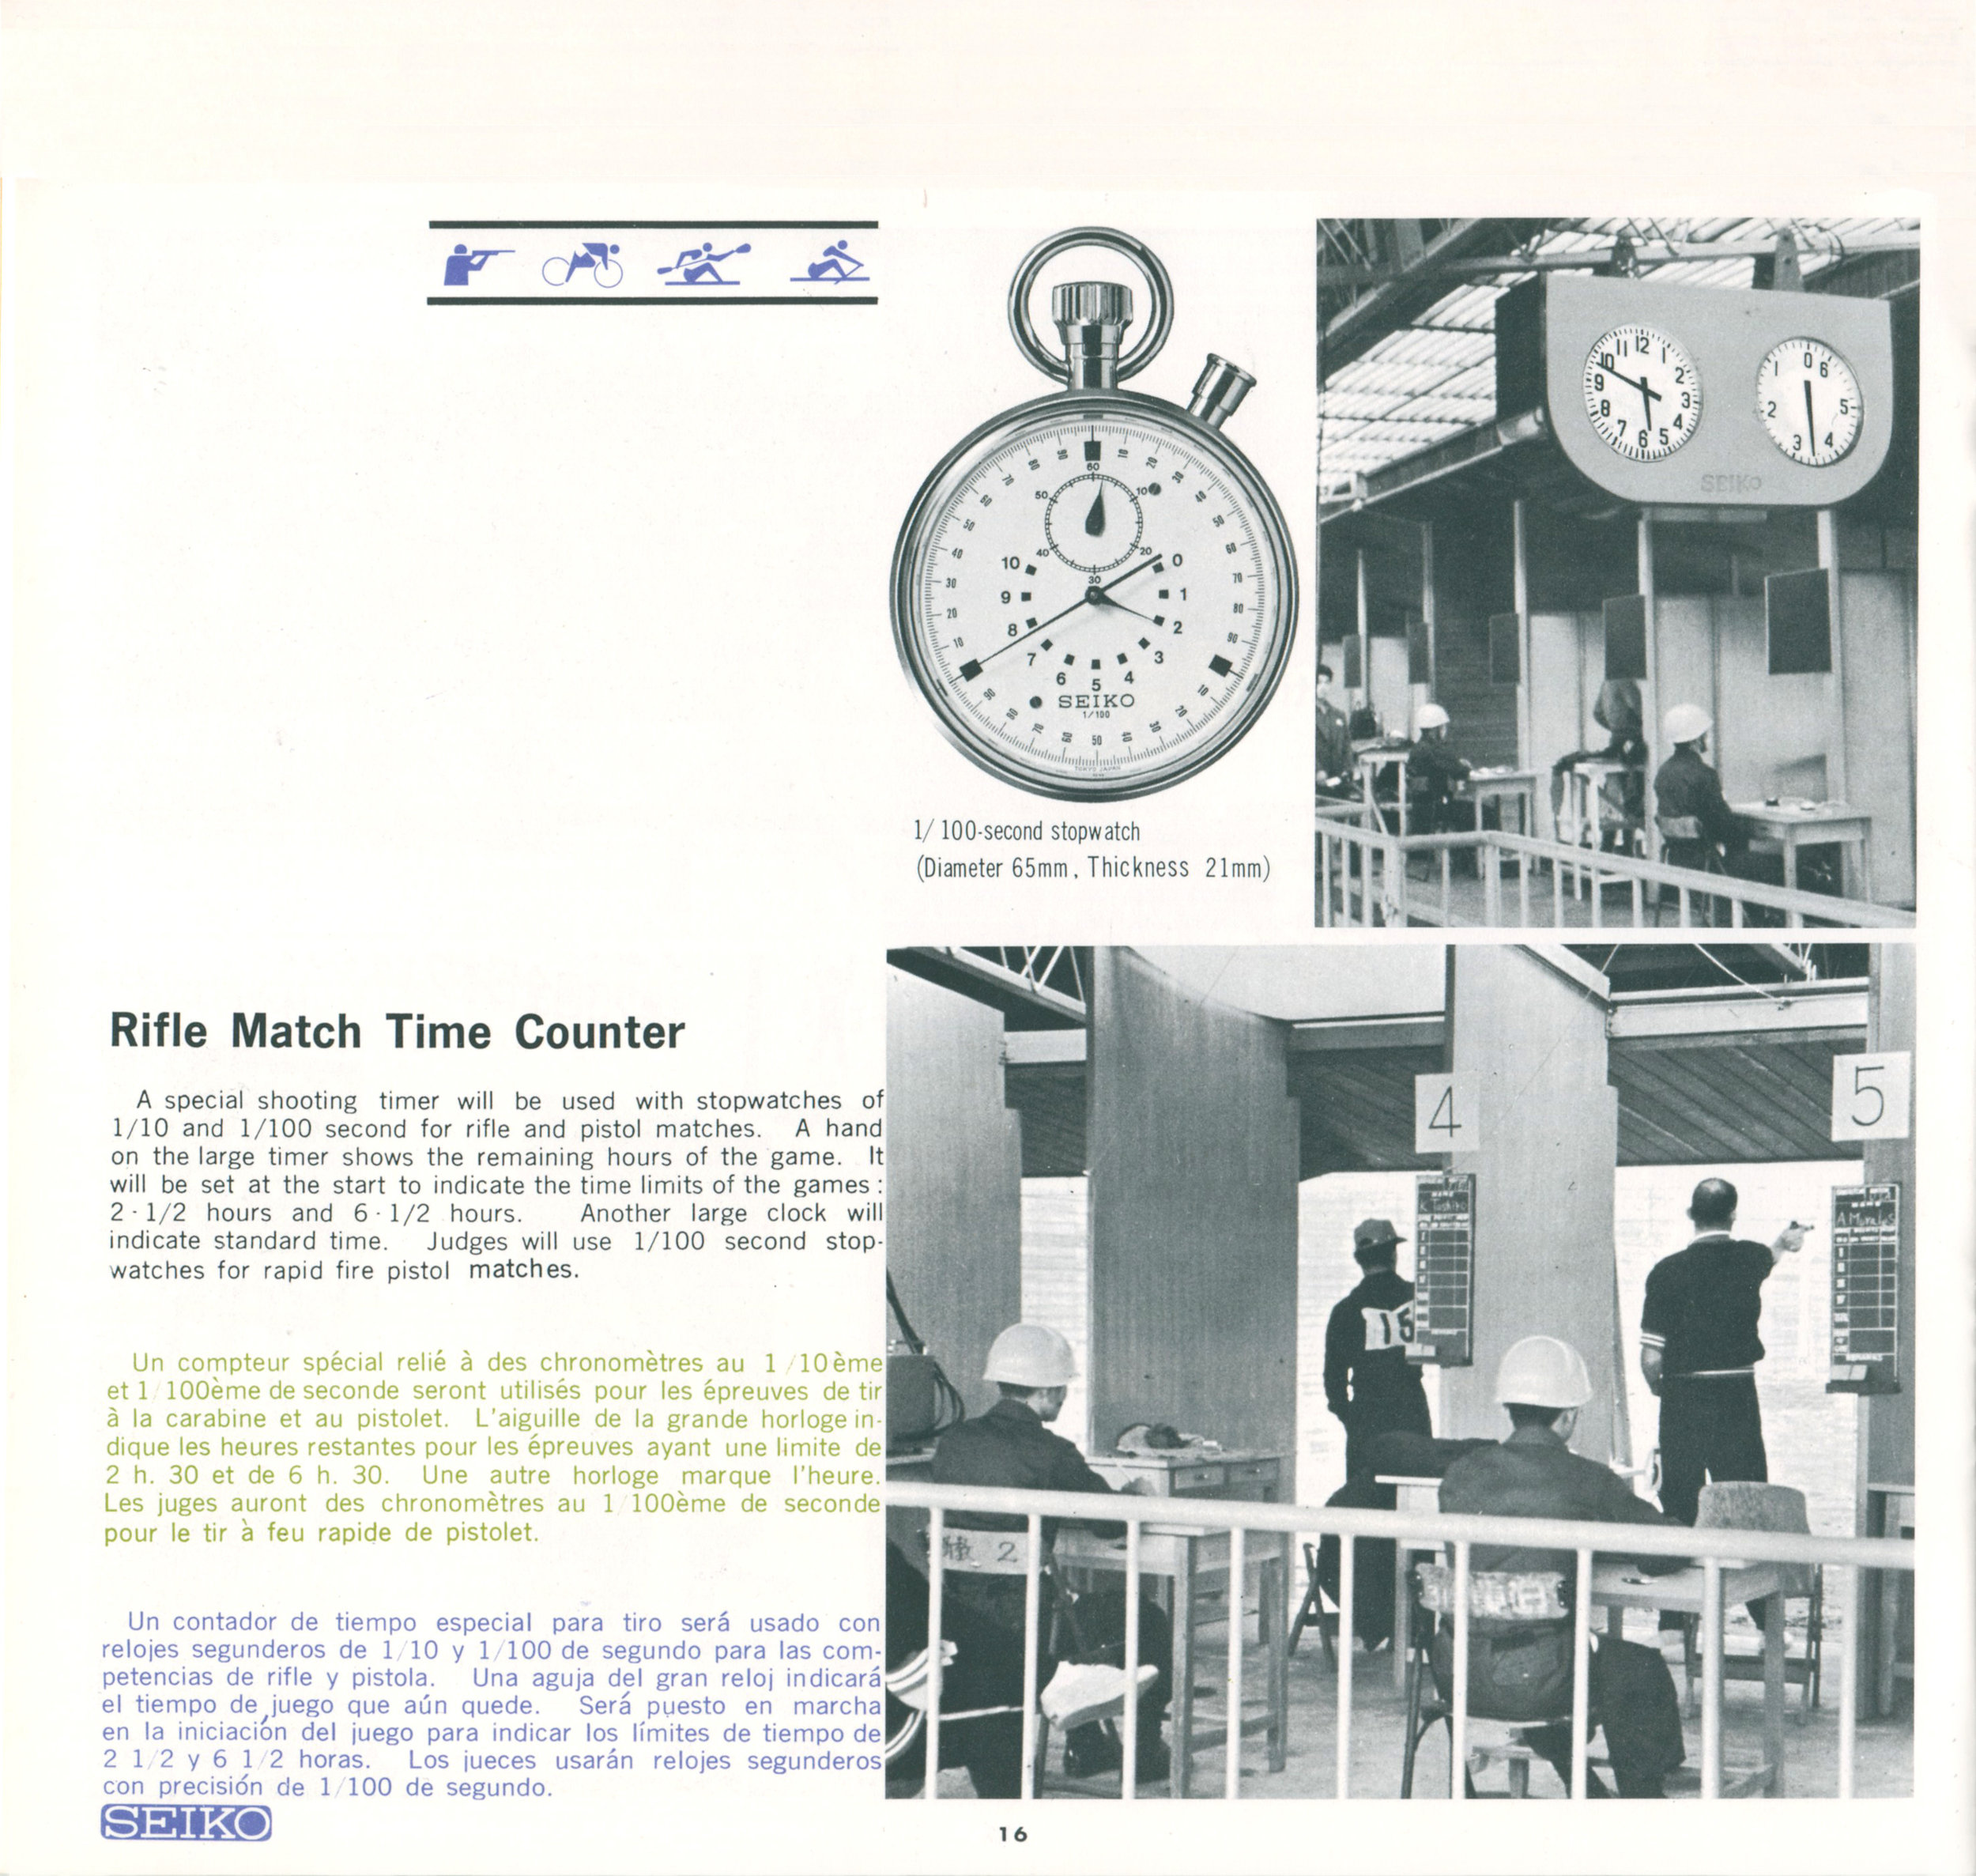 Rifle Match Time Counter